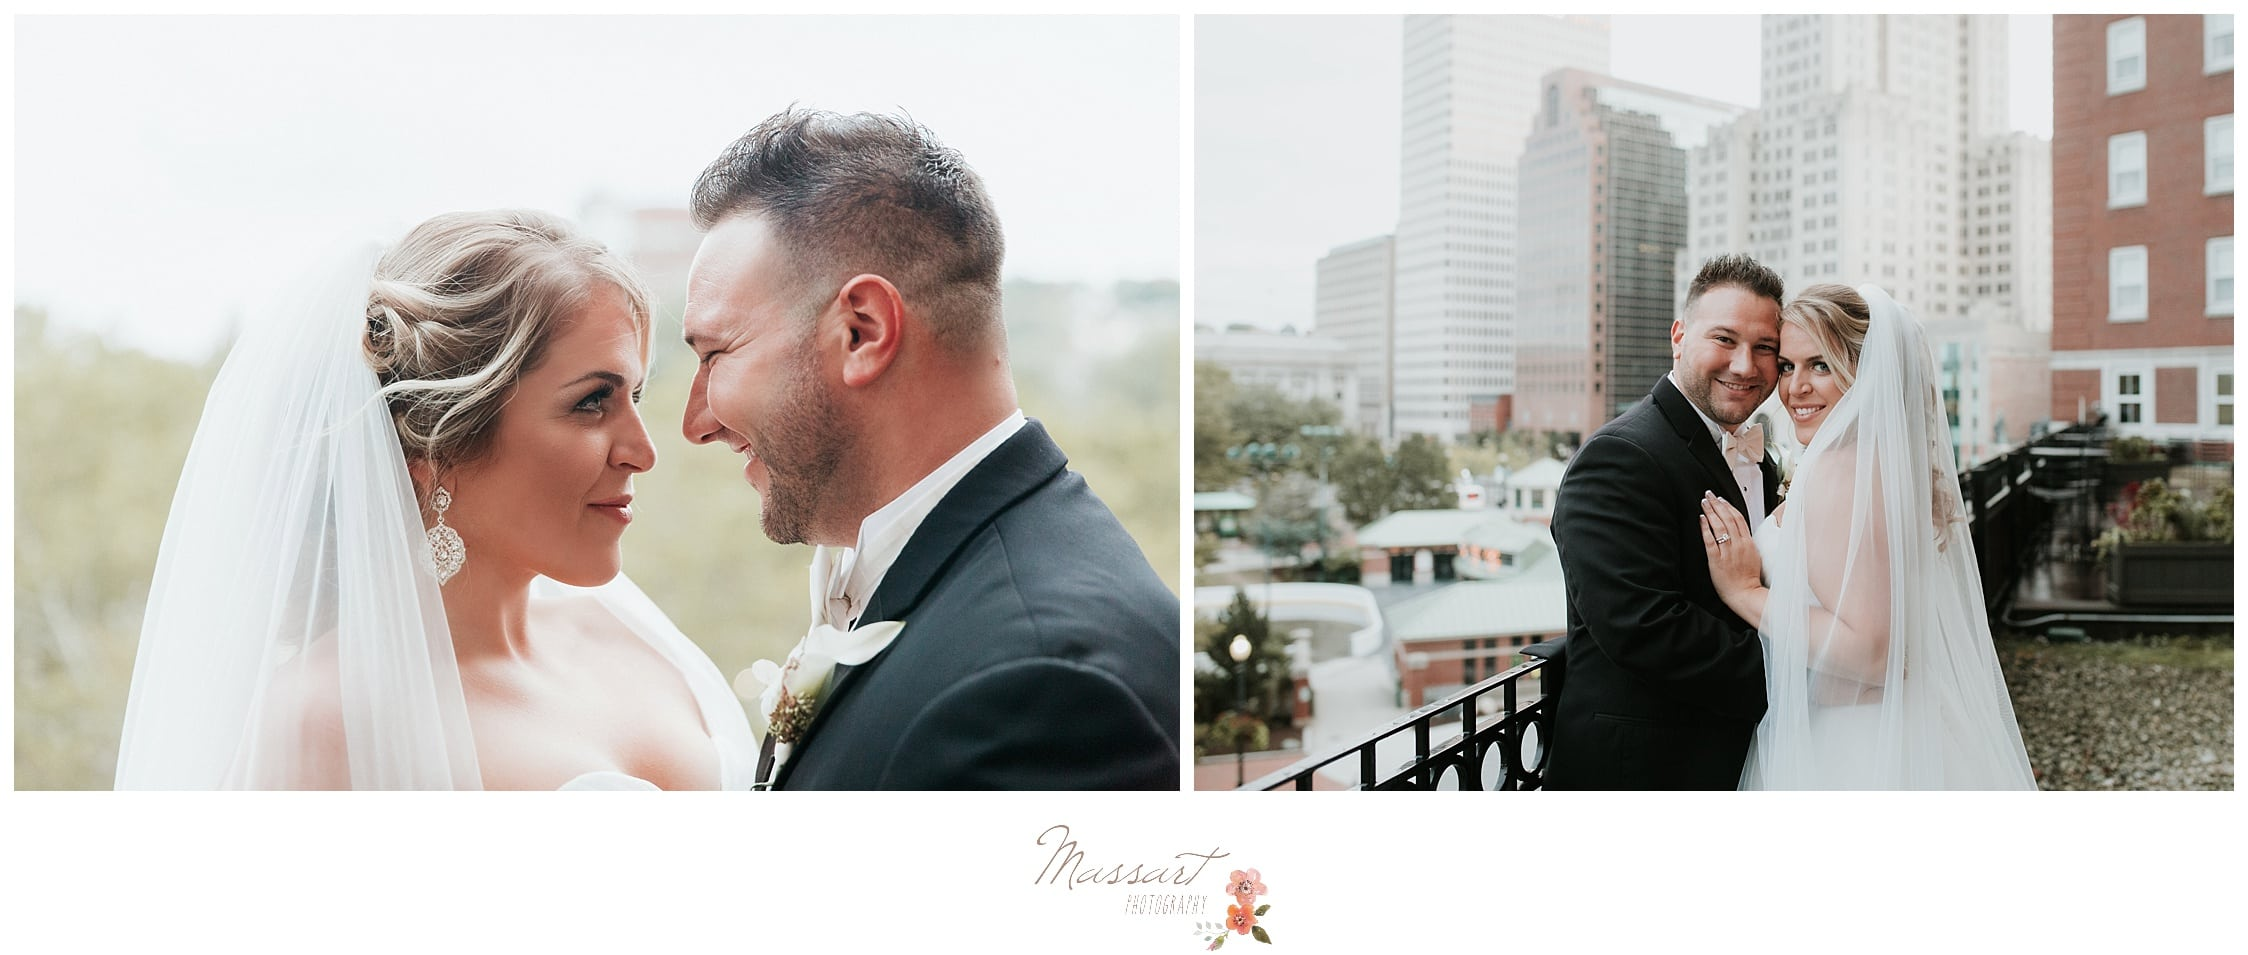 Formal portraits of the bride and groom on the balcony photographed by Massart Photography RI